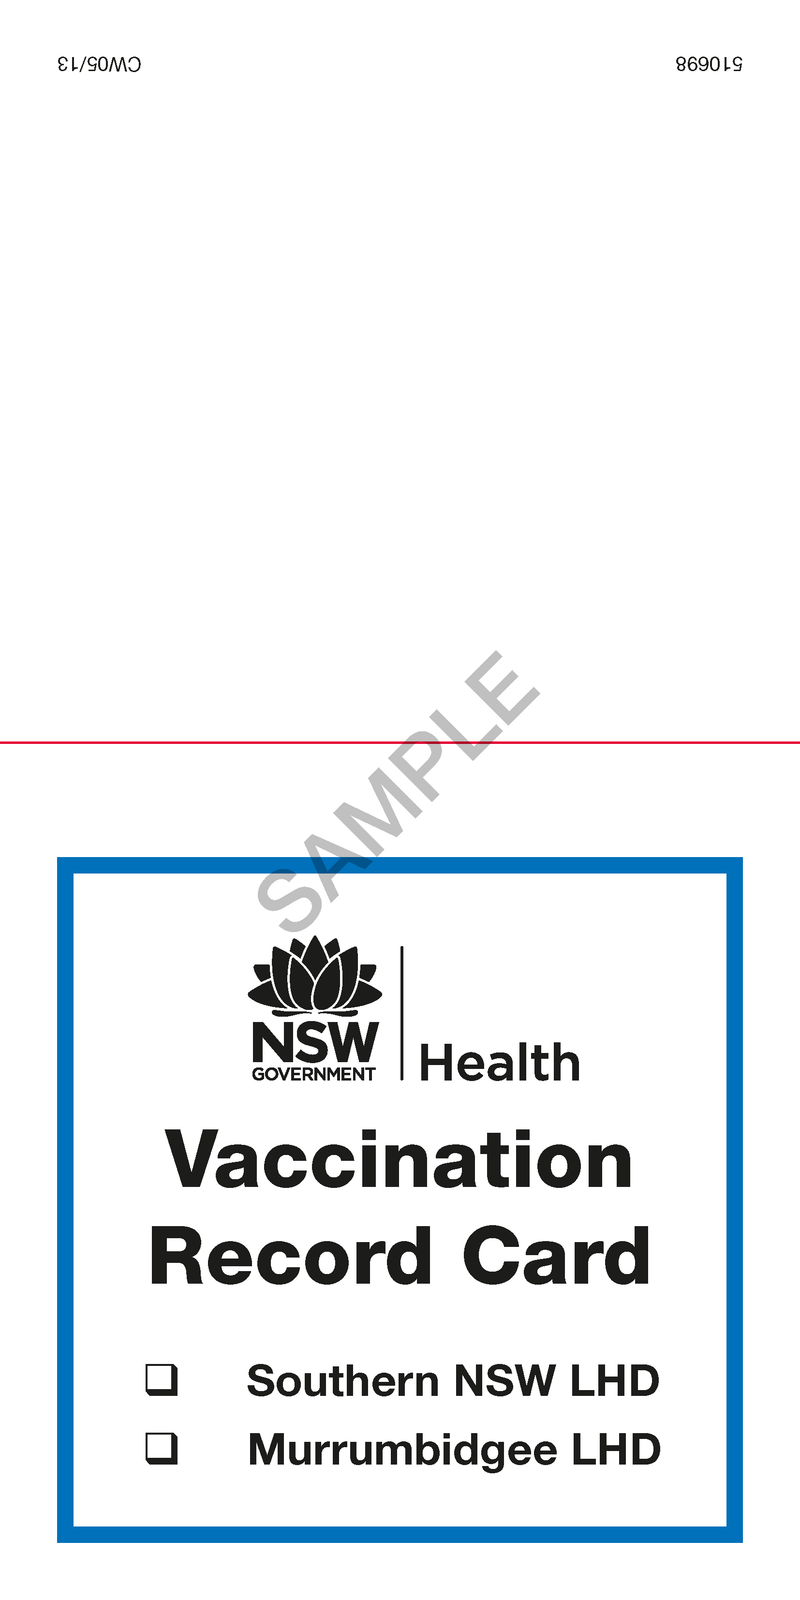 510698 - Vaccination Record Card